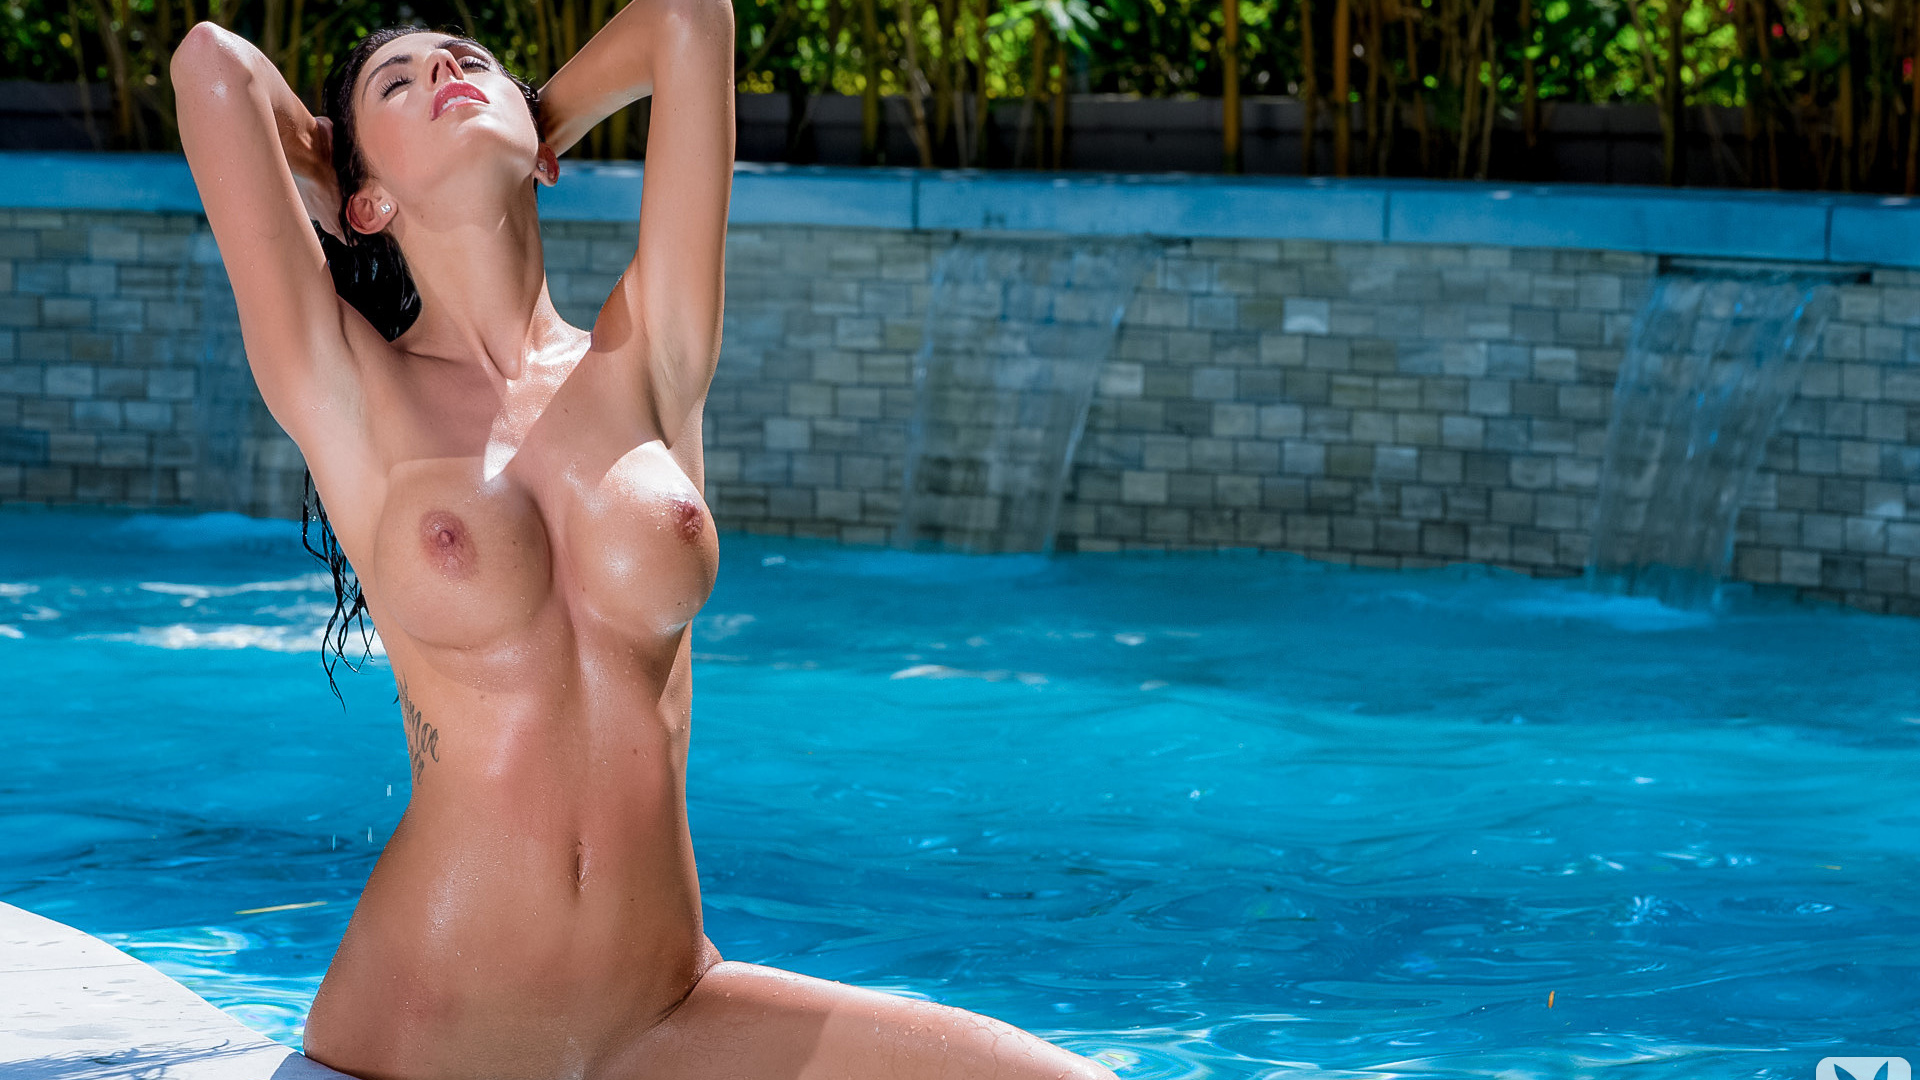 swimming-pools-pussy-tits